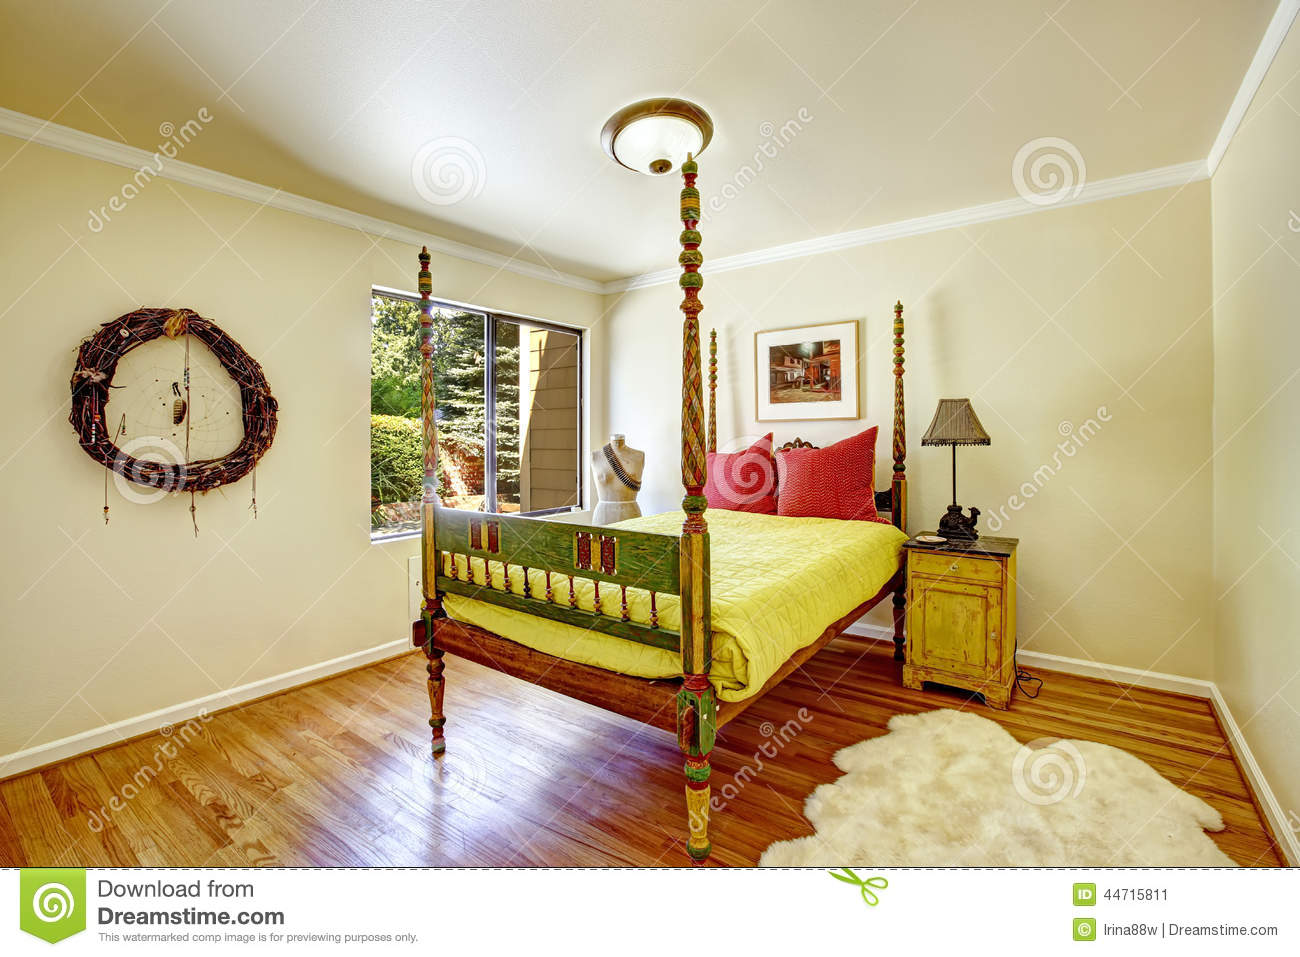 Extraordinary Bedroom Interior. Colorful Carved Wood Bed With Hi ...